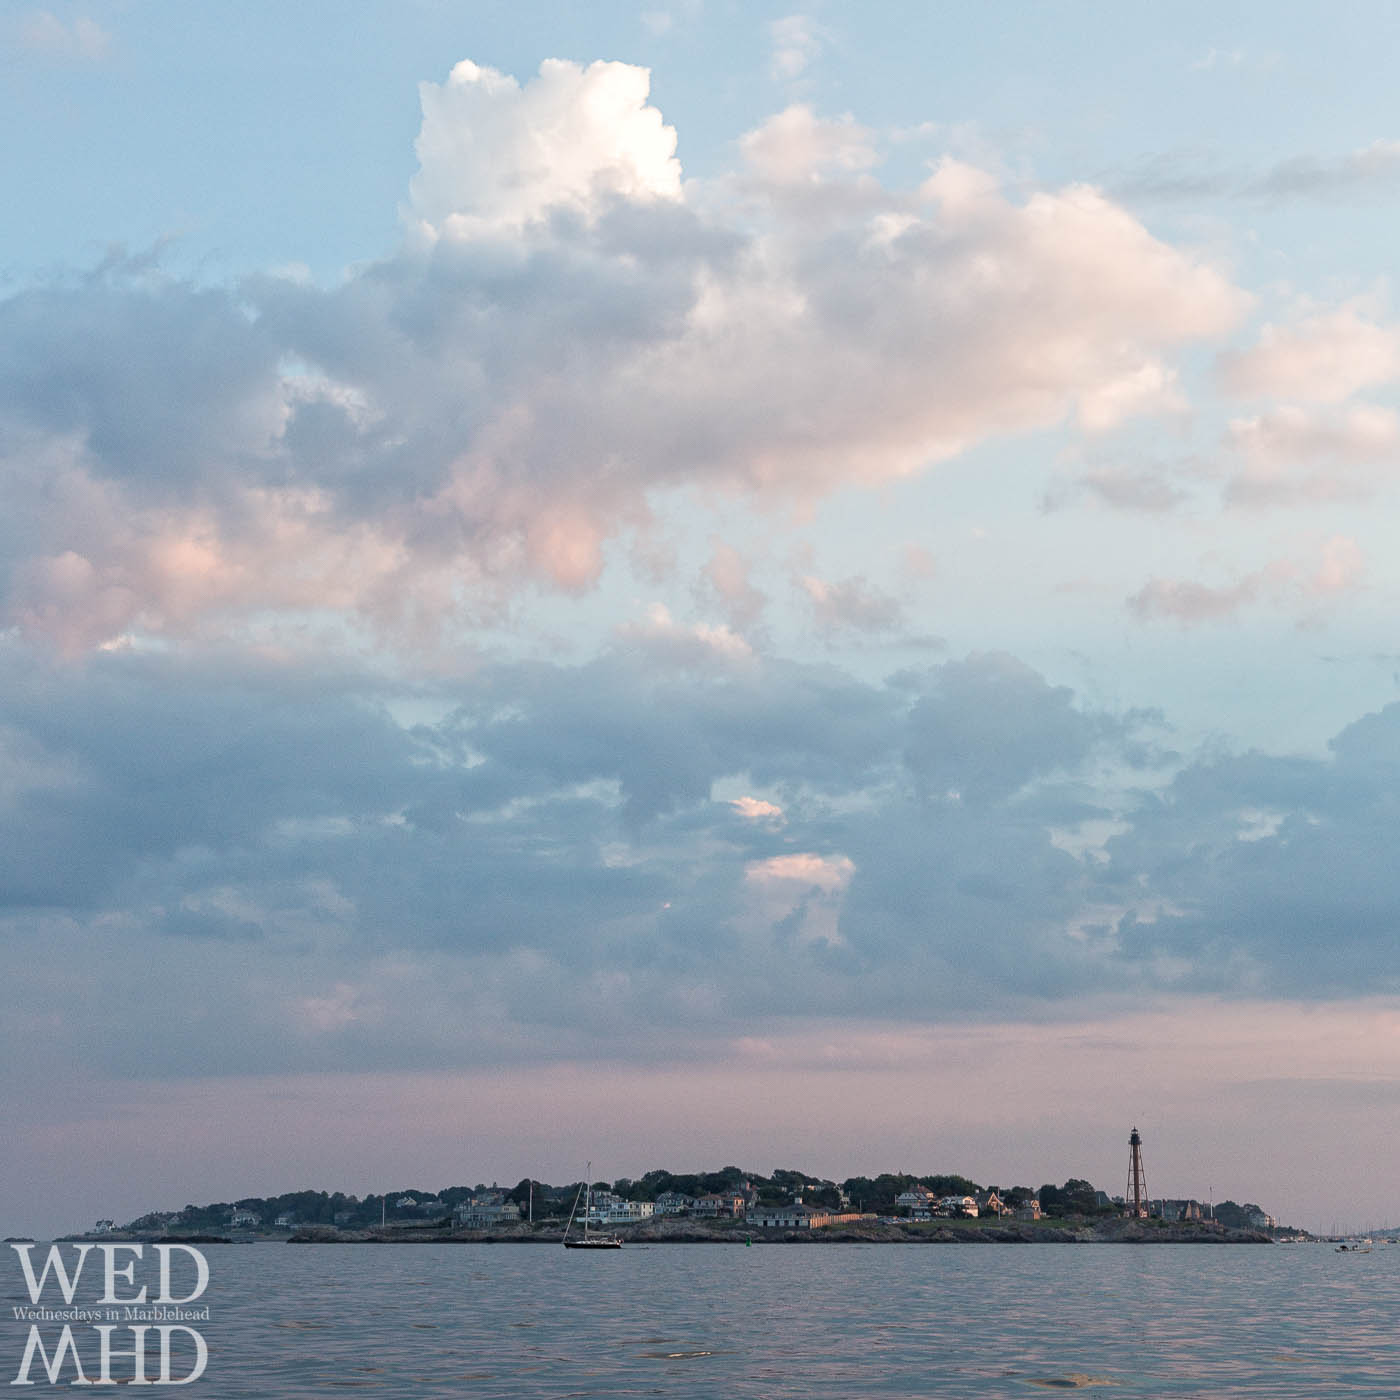 Chandler Hovey Park and Marblehead Neck seen on the approach to Marblehead harbor at sunset